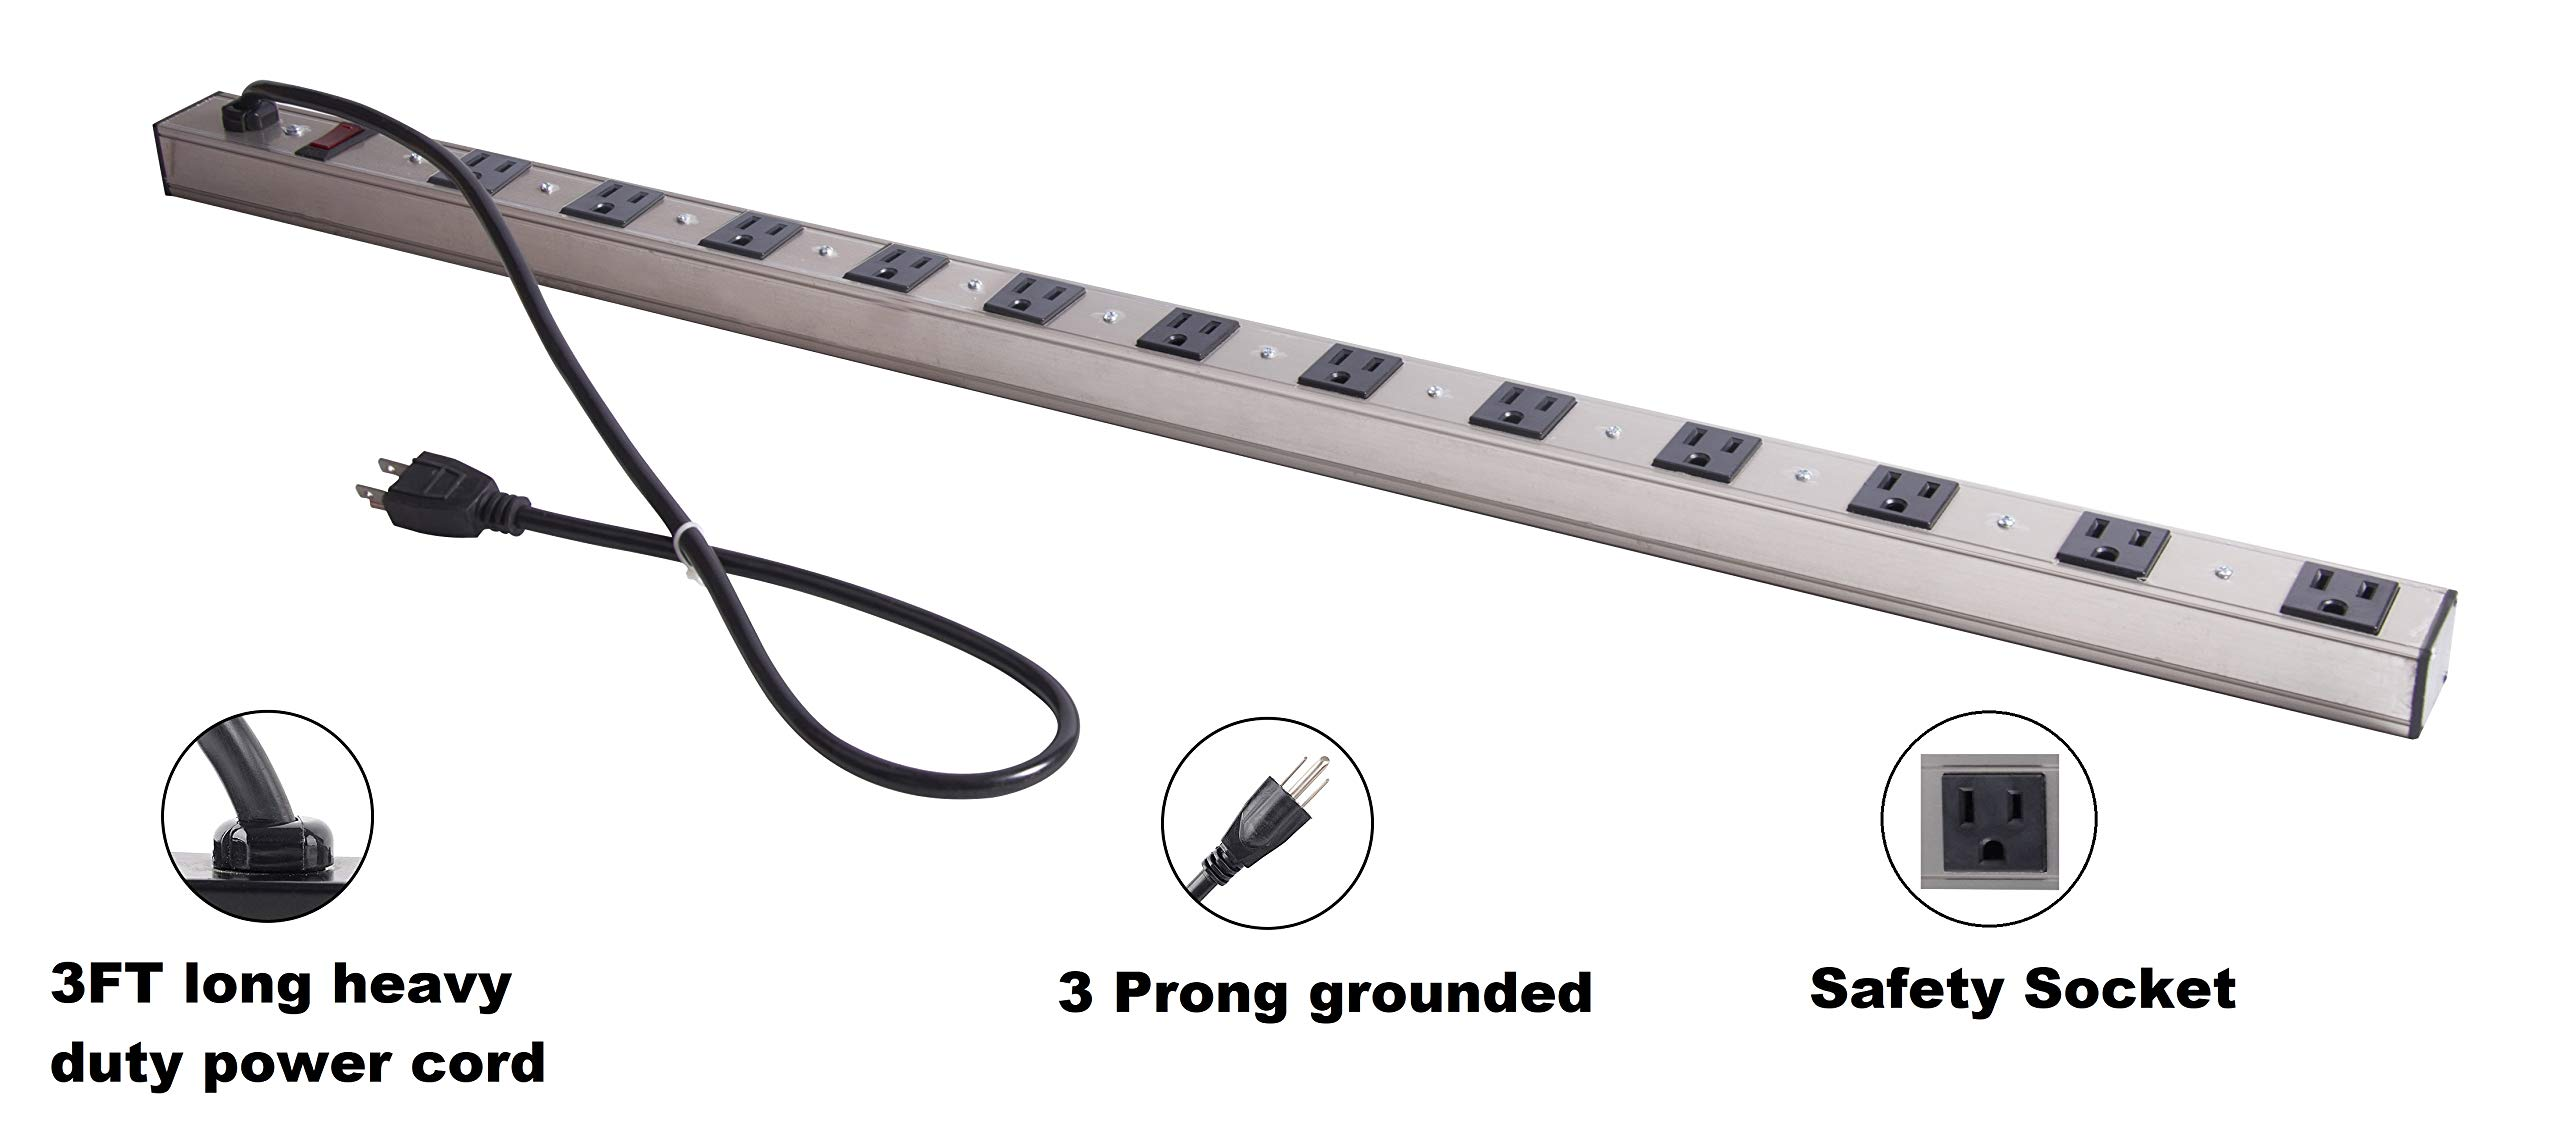 12 Outlet Aluminum Power Strip, 3-Foot Long 14 AWG Extension Cord and Circuit Breaker Rocker Switch. 15A/125V ETL Certified. Great for Home/Office/Workshop/Industrial